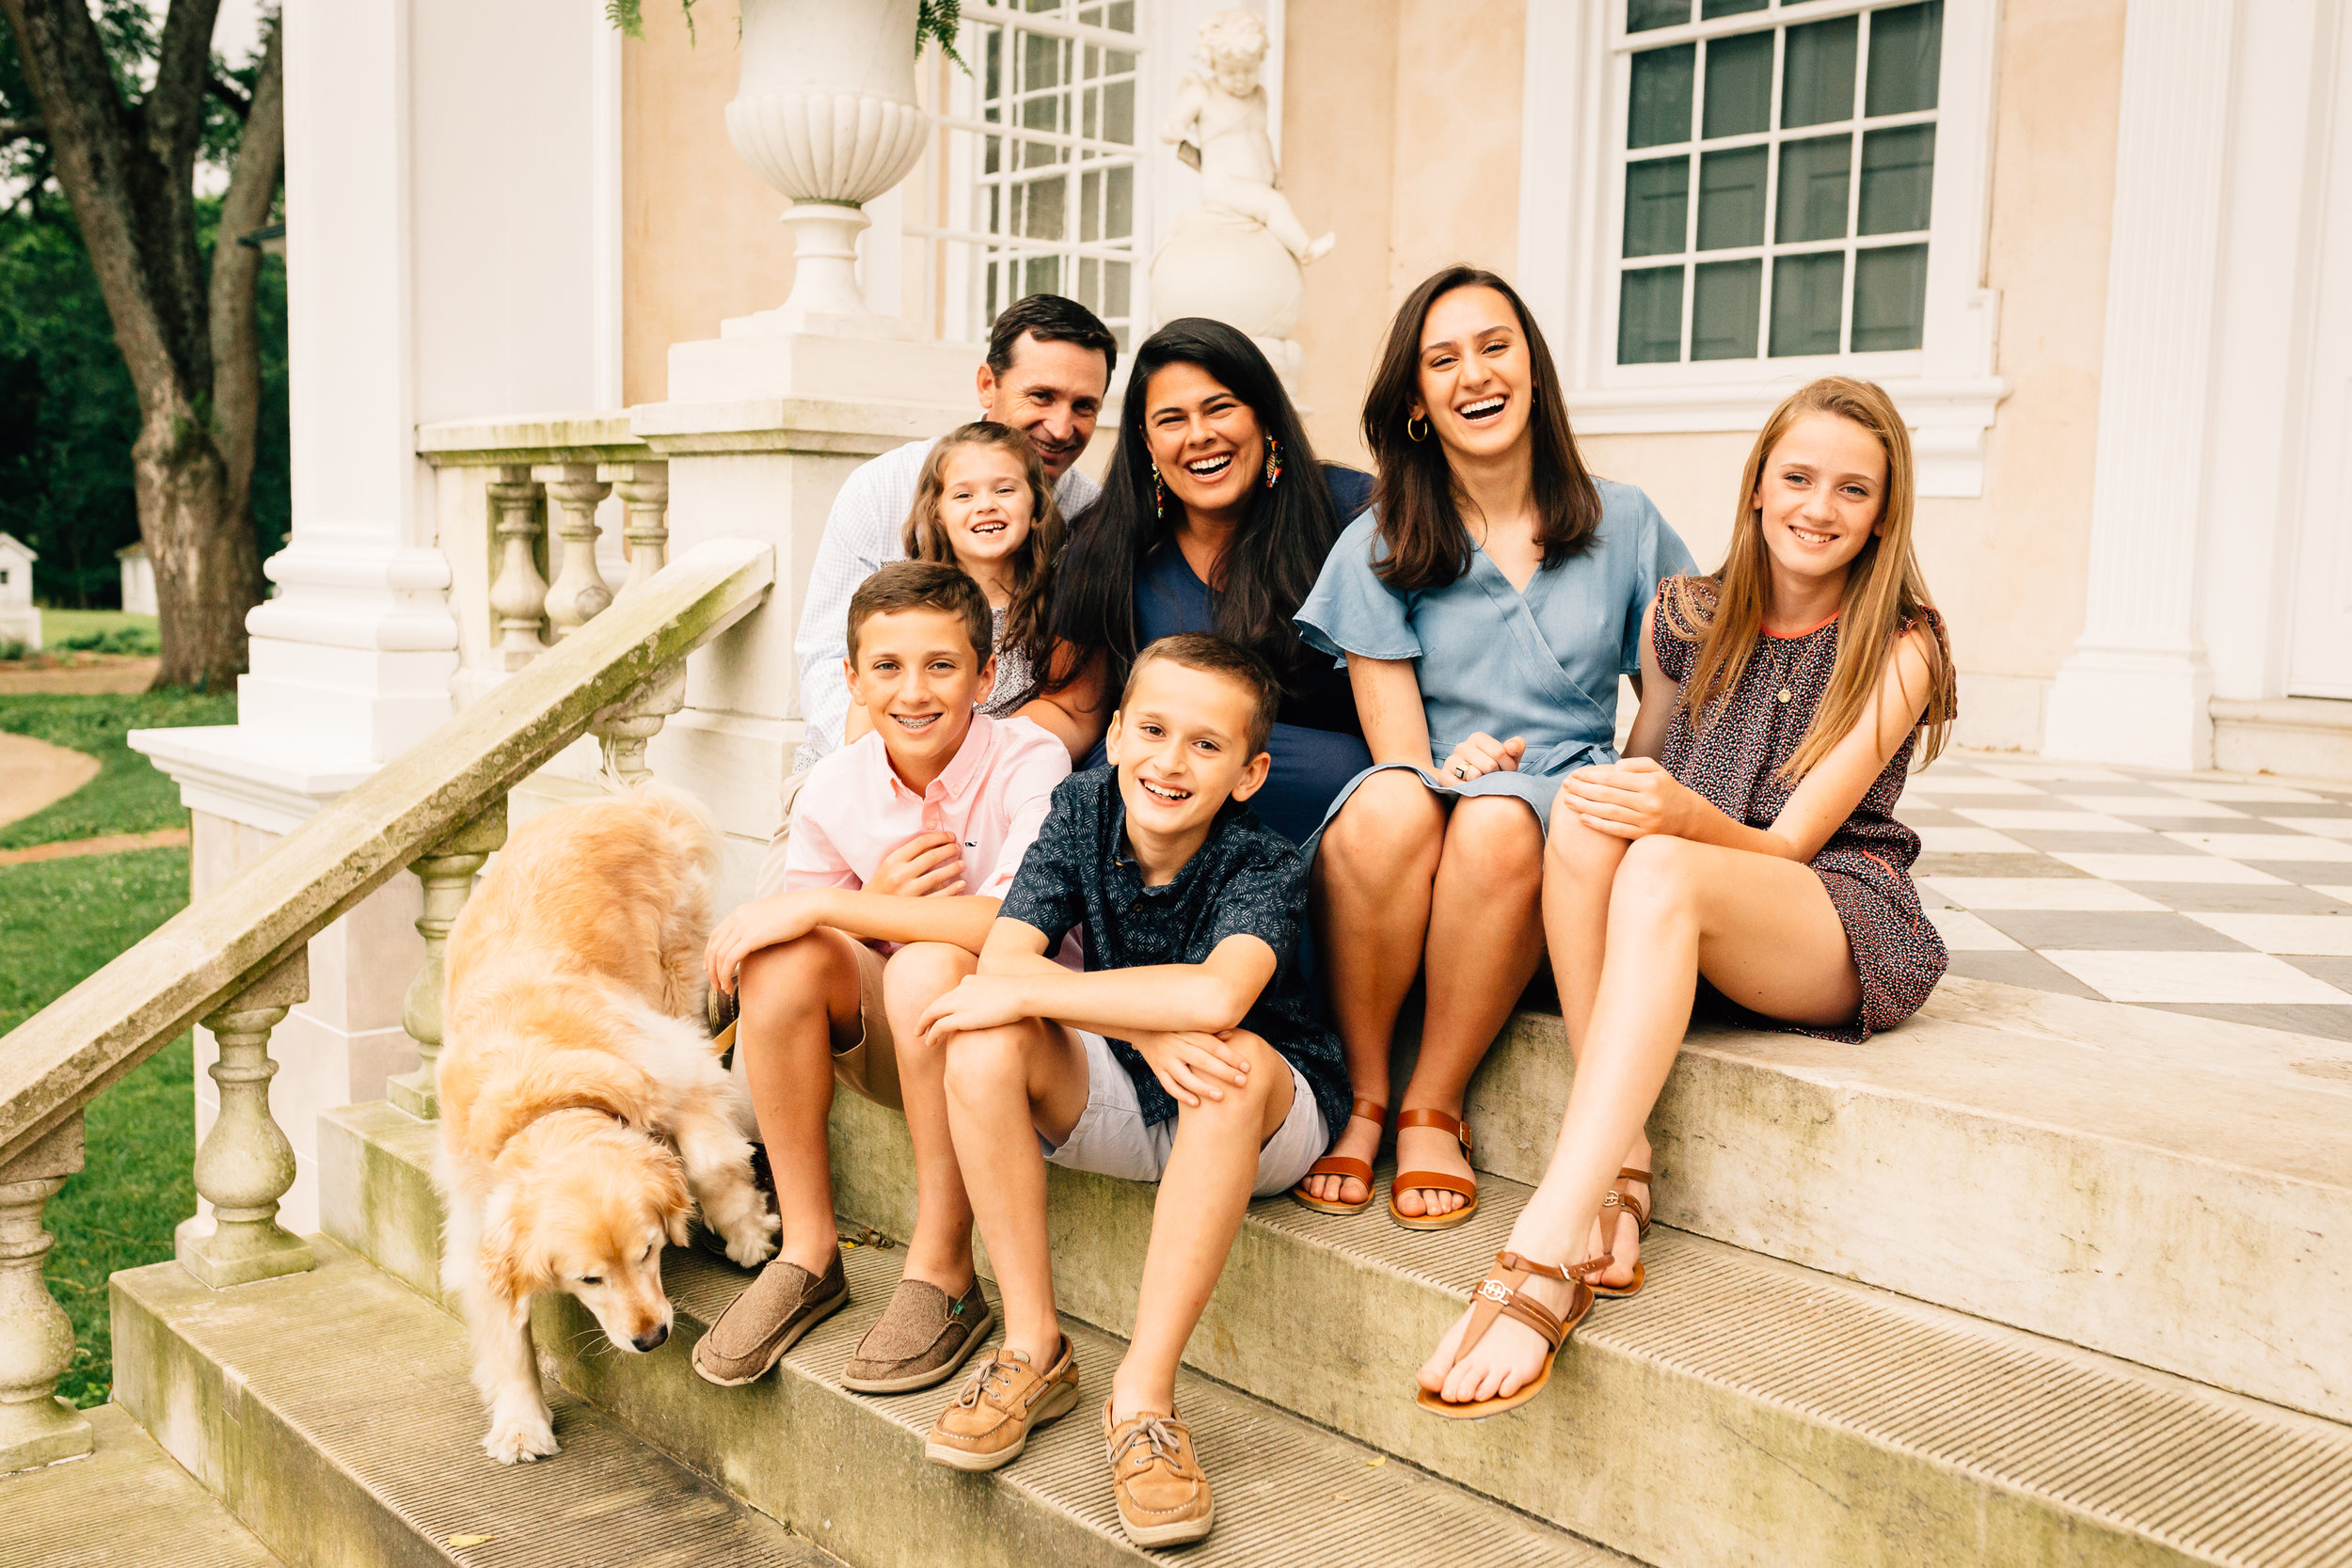 smithberger_lifestyle_family_session_hampton_mansion-4593.jpg